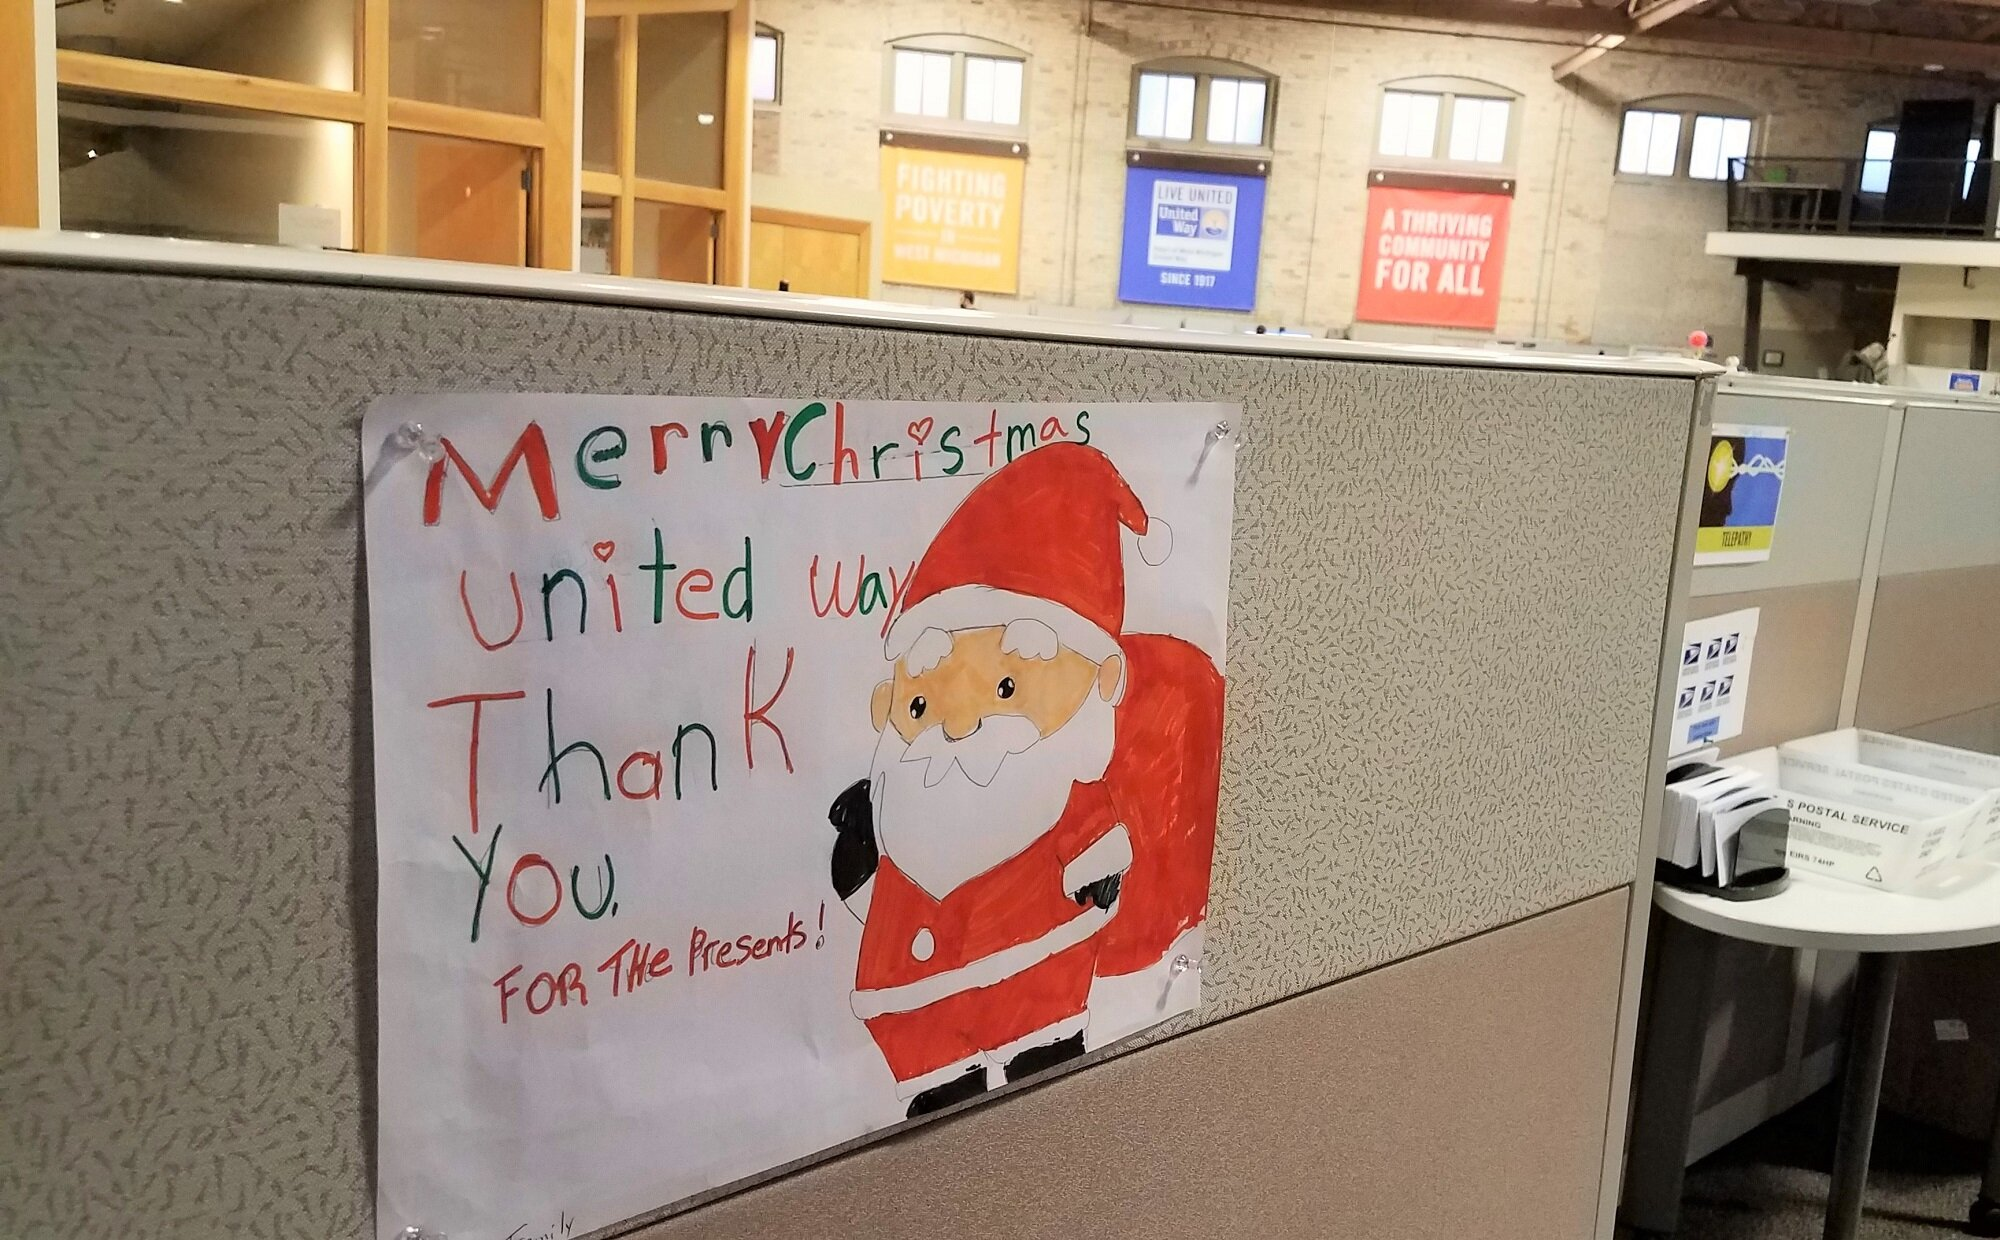 Adopt-a-Family Brings Holiday Cheer to 175 — Heart of West ...